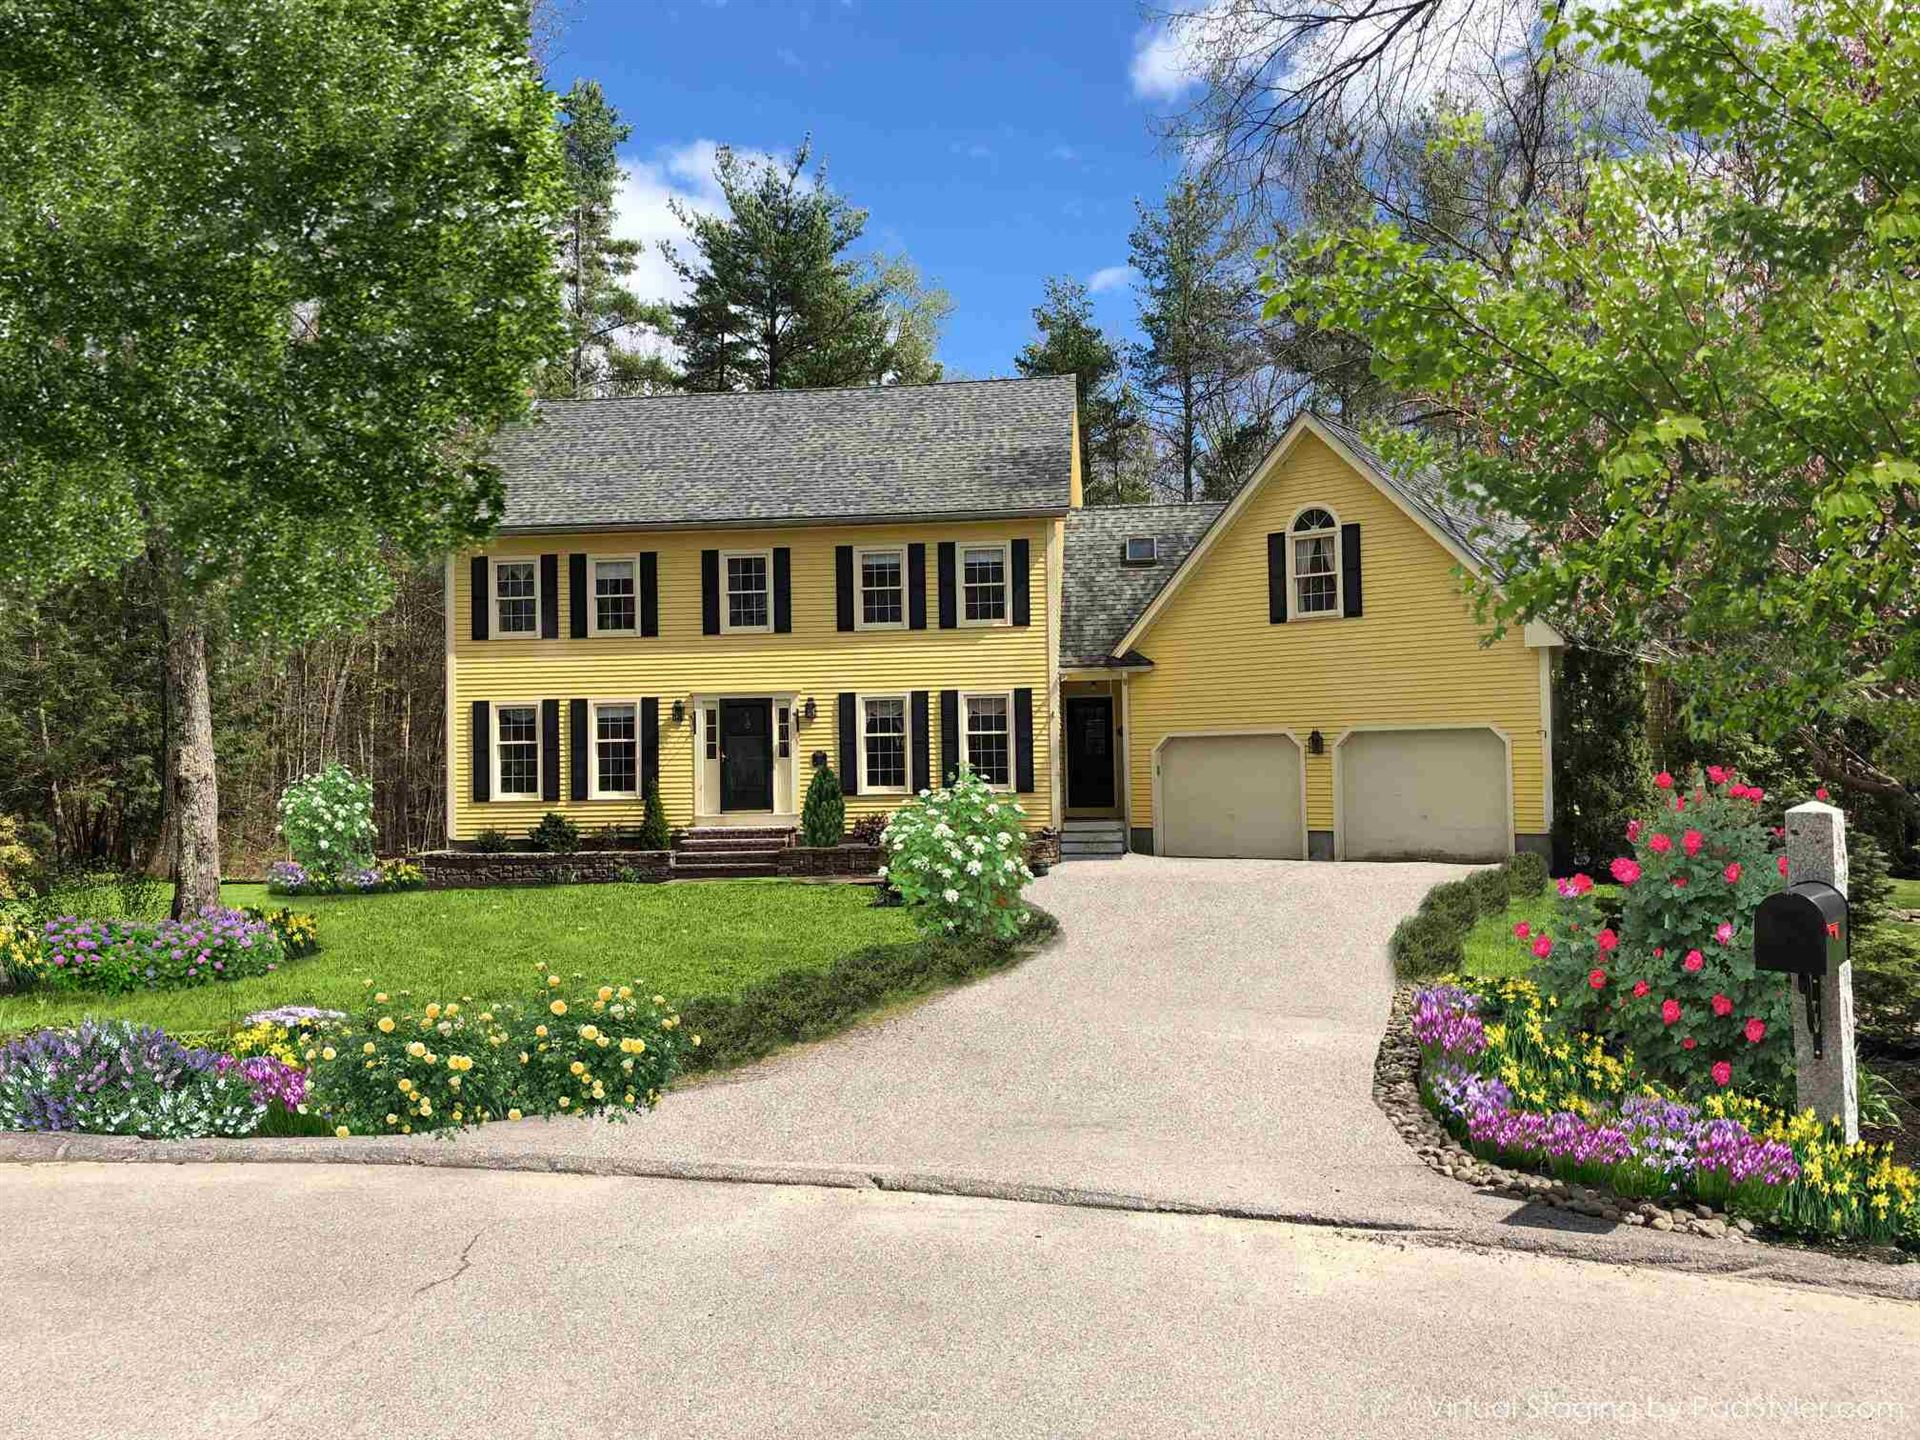 14 Hunter Place, Exeter, NH 03833 - MLS#: 4805732